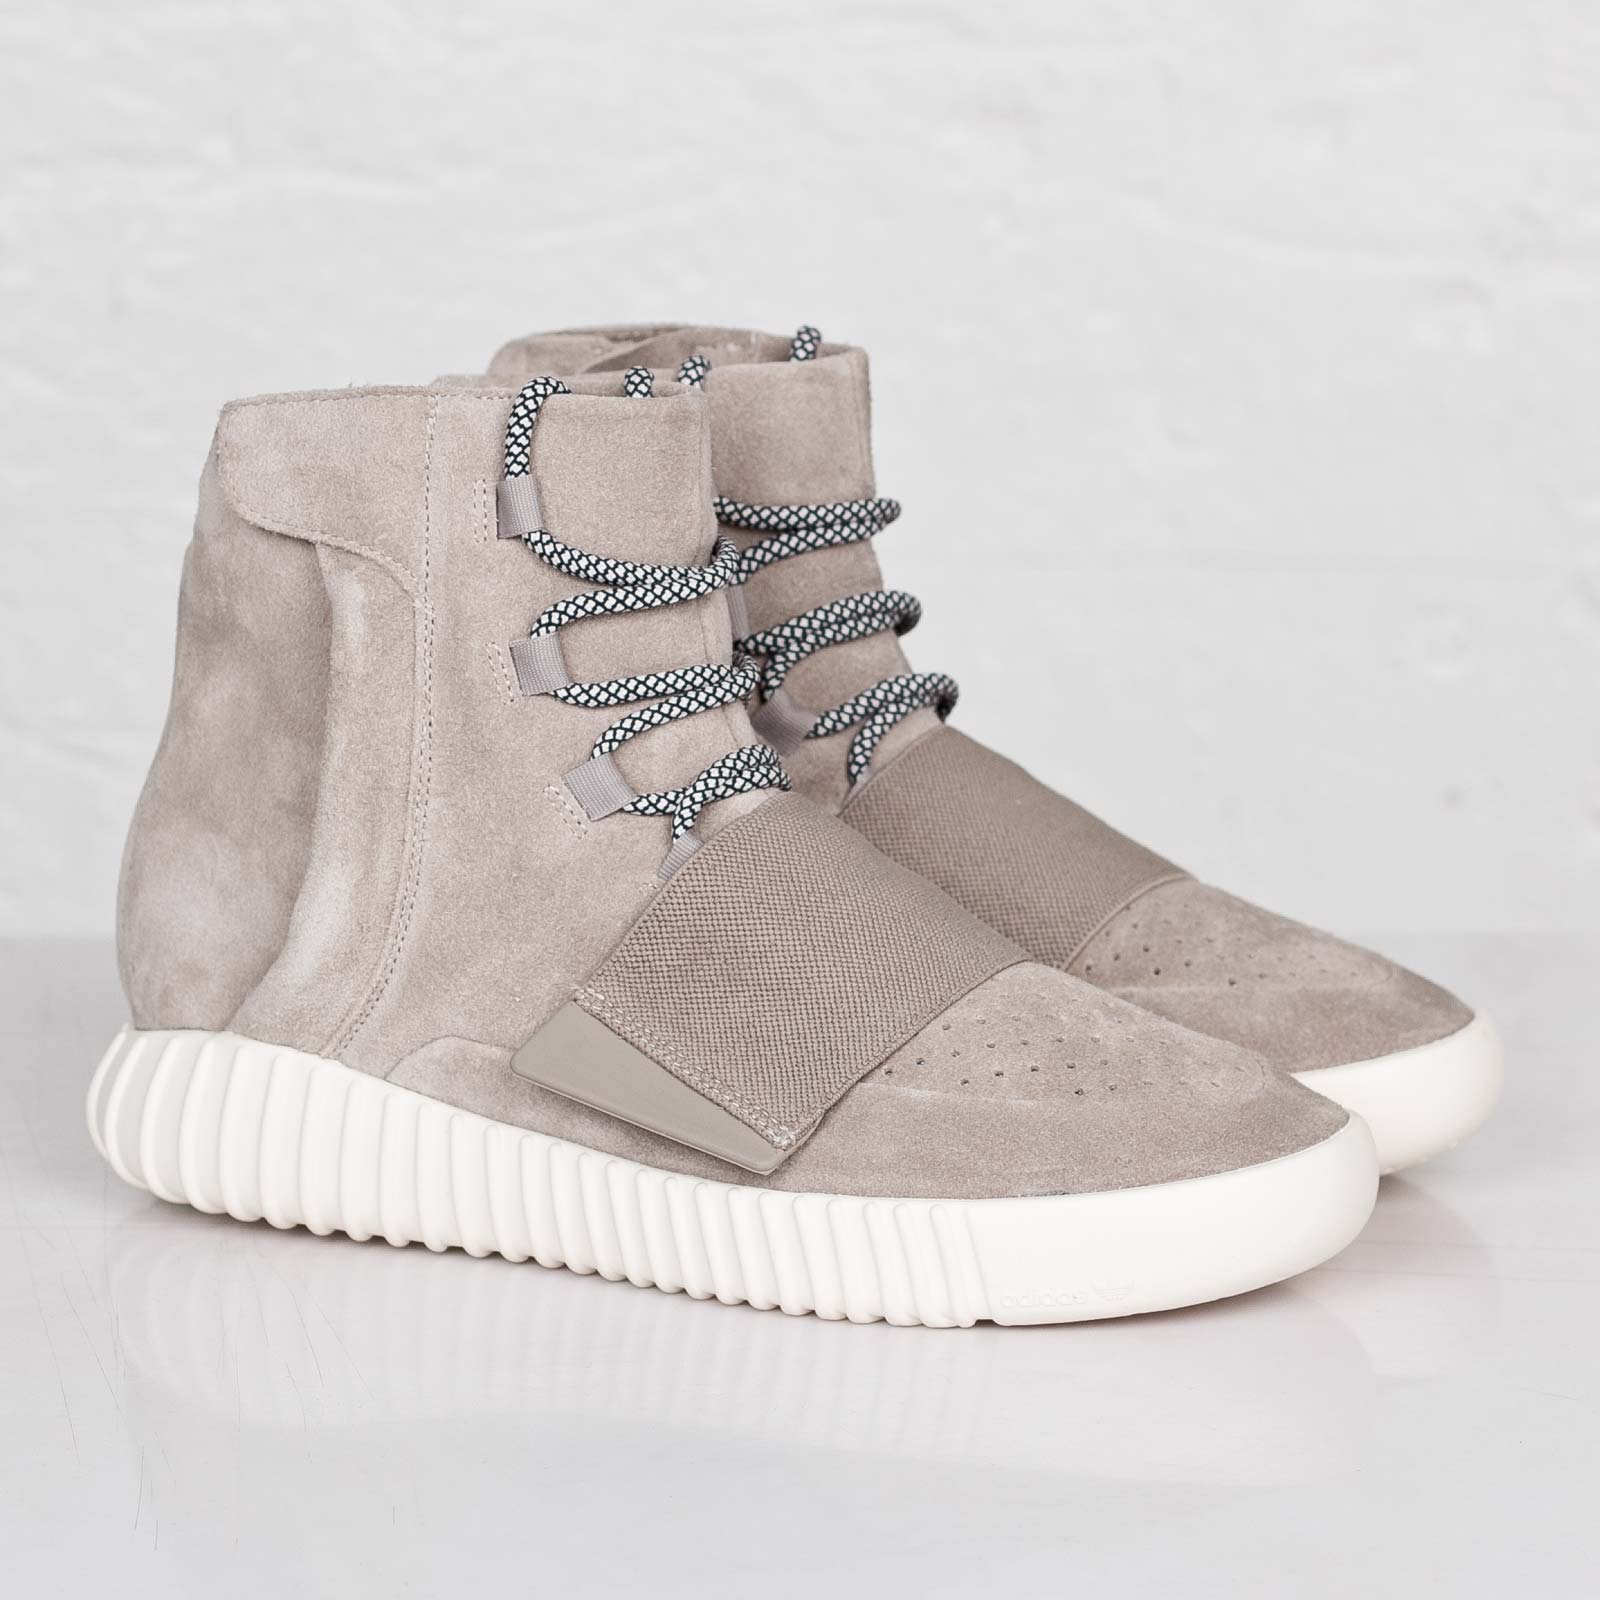 cheap adidas yeezy 750 boost